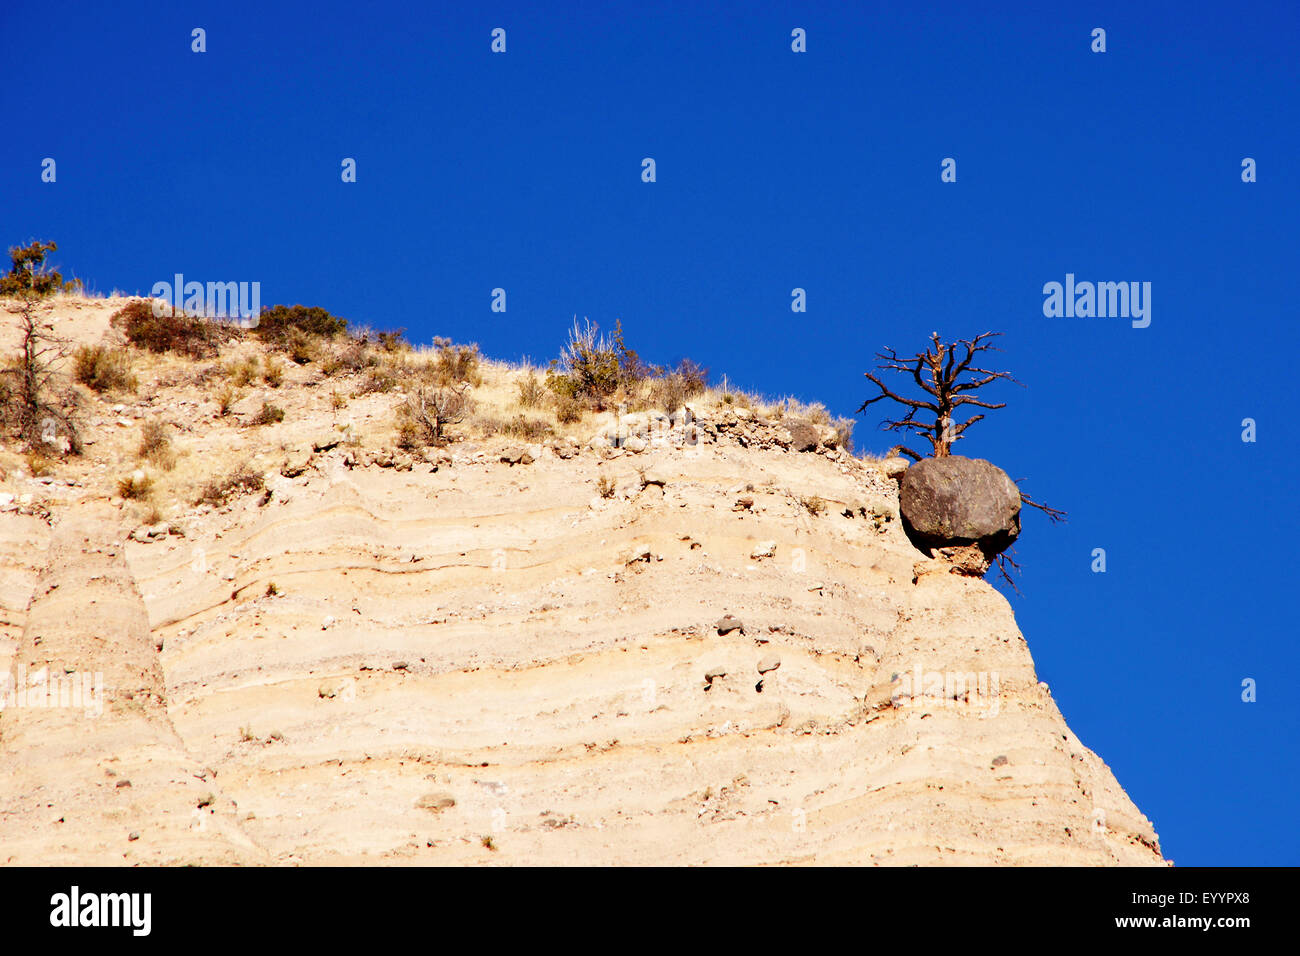 coniferous tree on slope with cloudless sky, USA, New Mexico, Kasha-Katuwe Tent Rocks National Monument - Stock Image